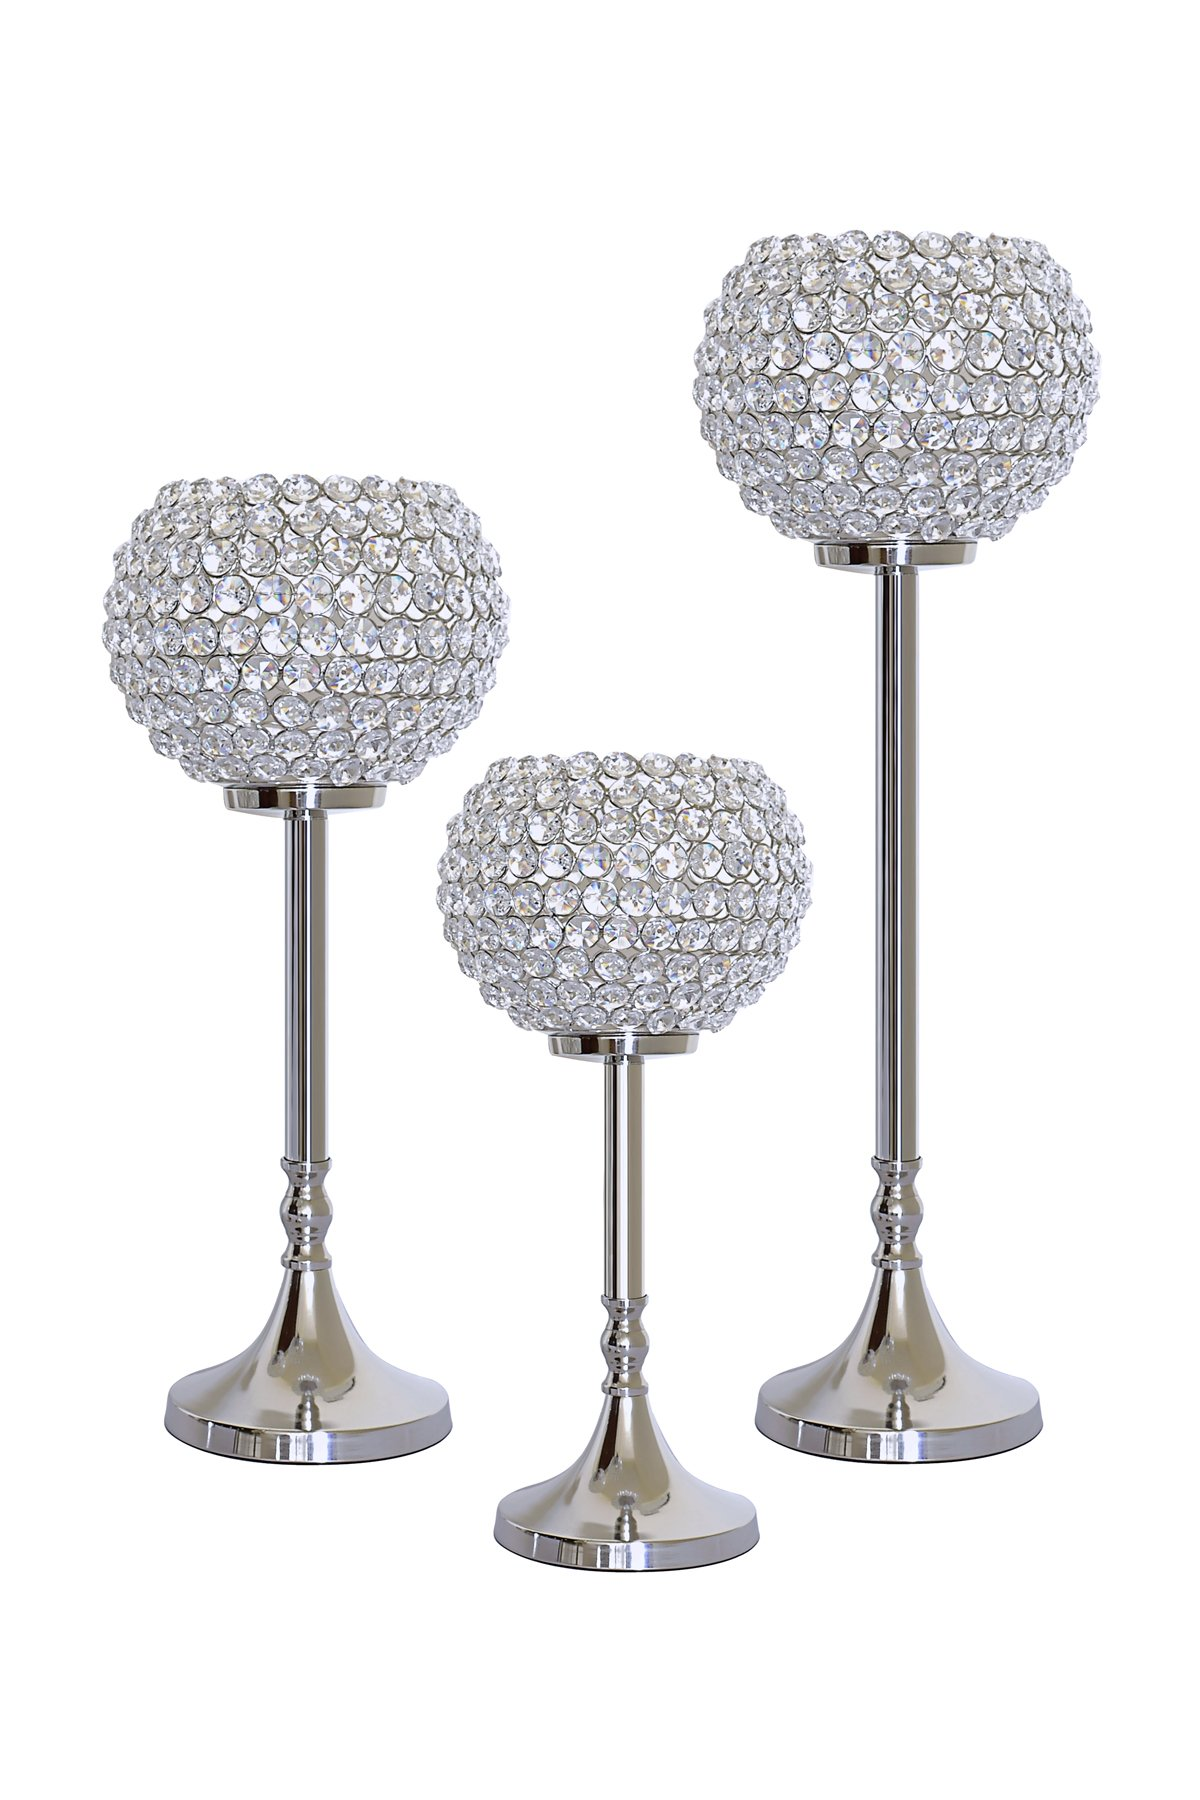 Set of 3 Crystal Votive Pillar Candle Holders Table Wedding Centerpieces Best Home Décor Gifts